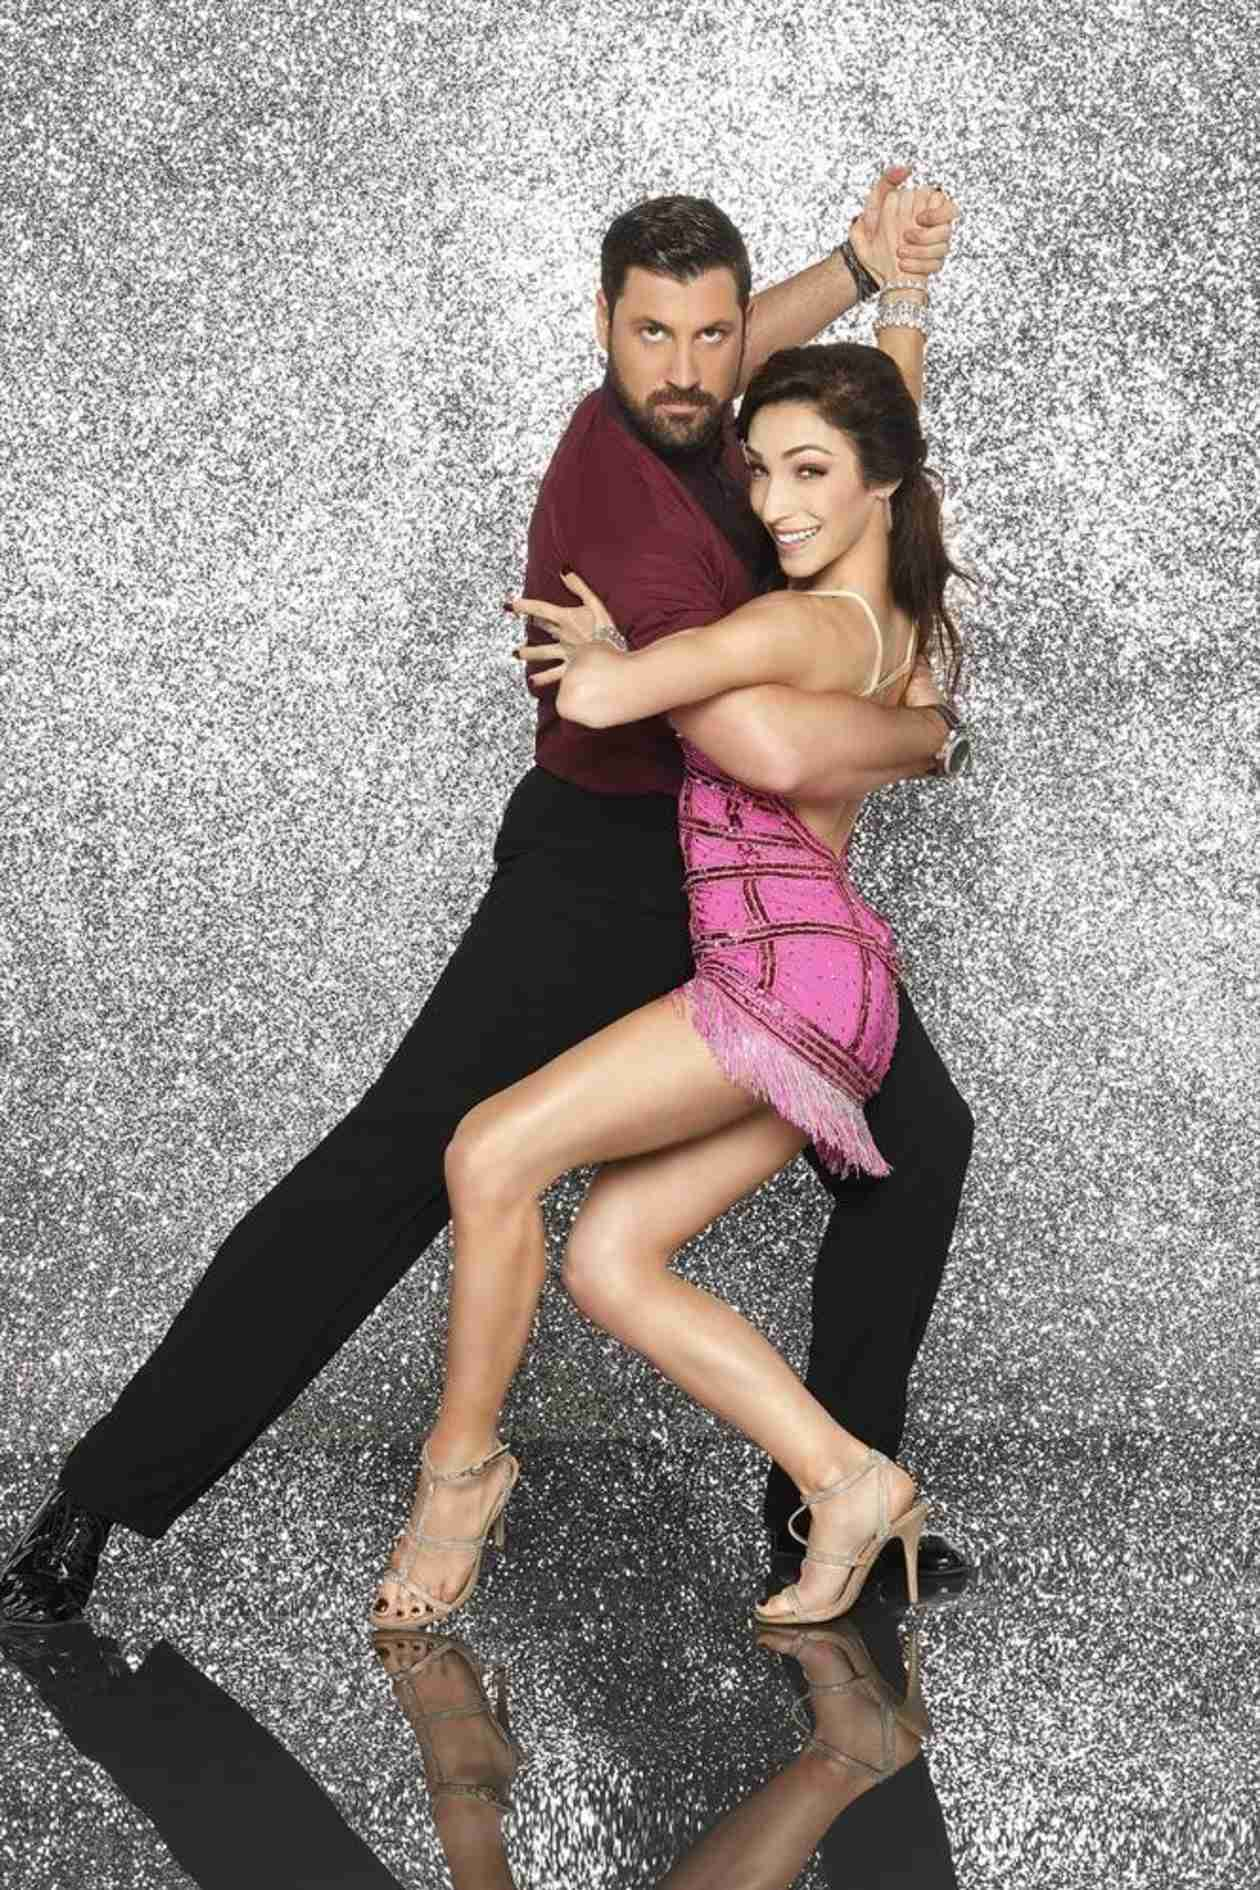 Dancing With the Stars 2014: Meryl Davis and Maksim Chmerkovskiy's Week 1 Cha-Cha-Cha (VIDEO)